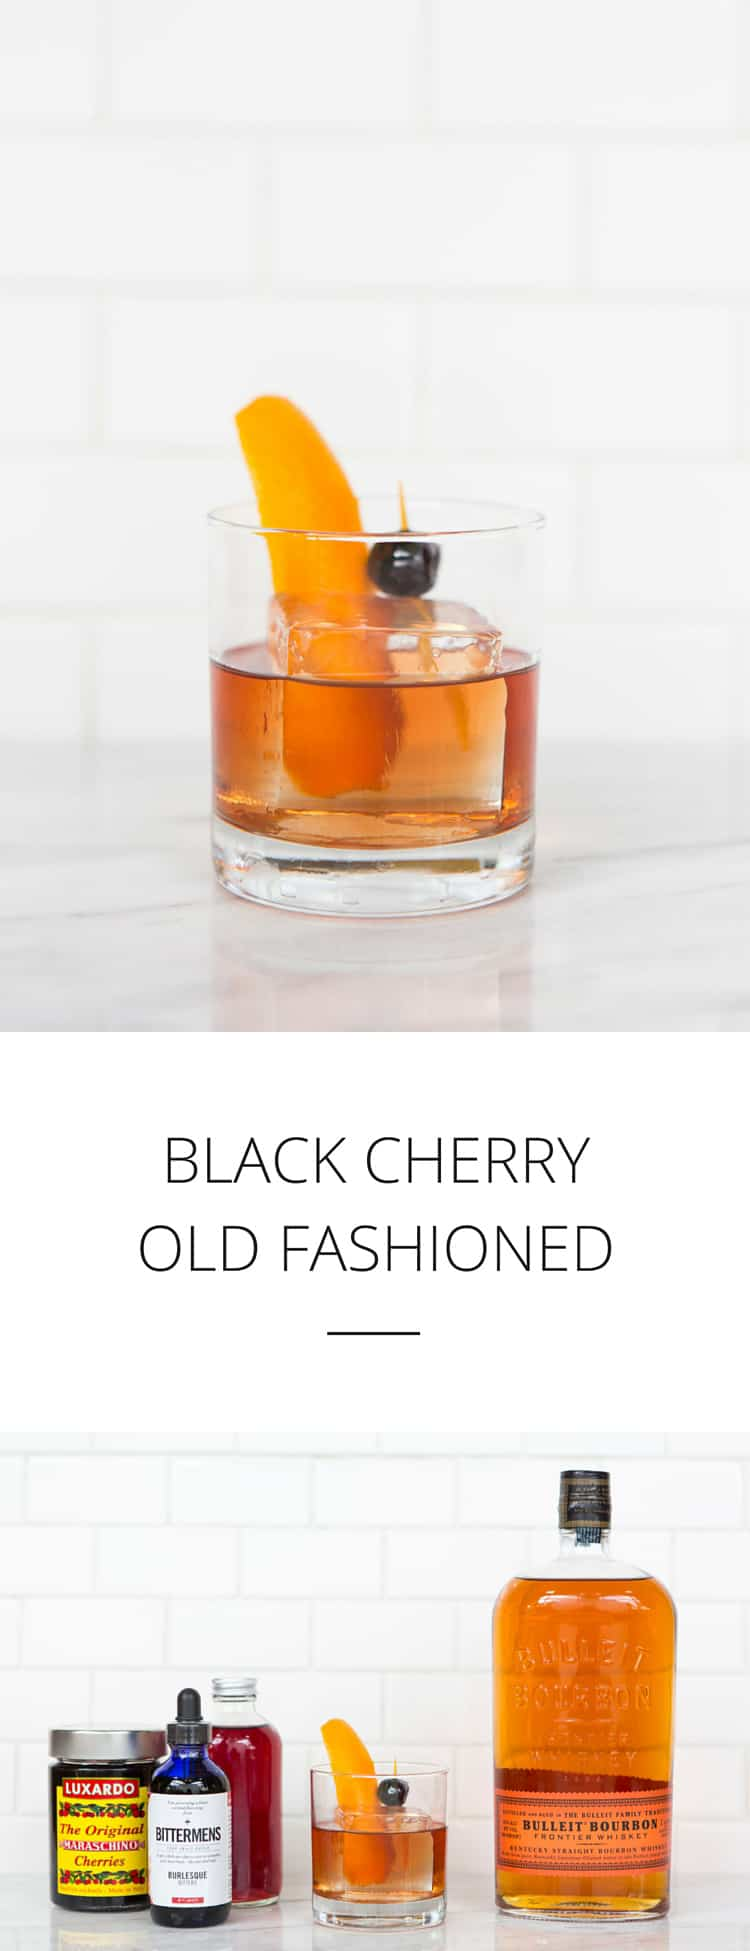 Black Cherries For Old Fashioned